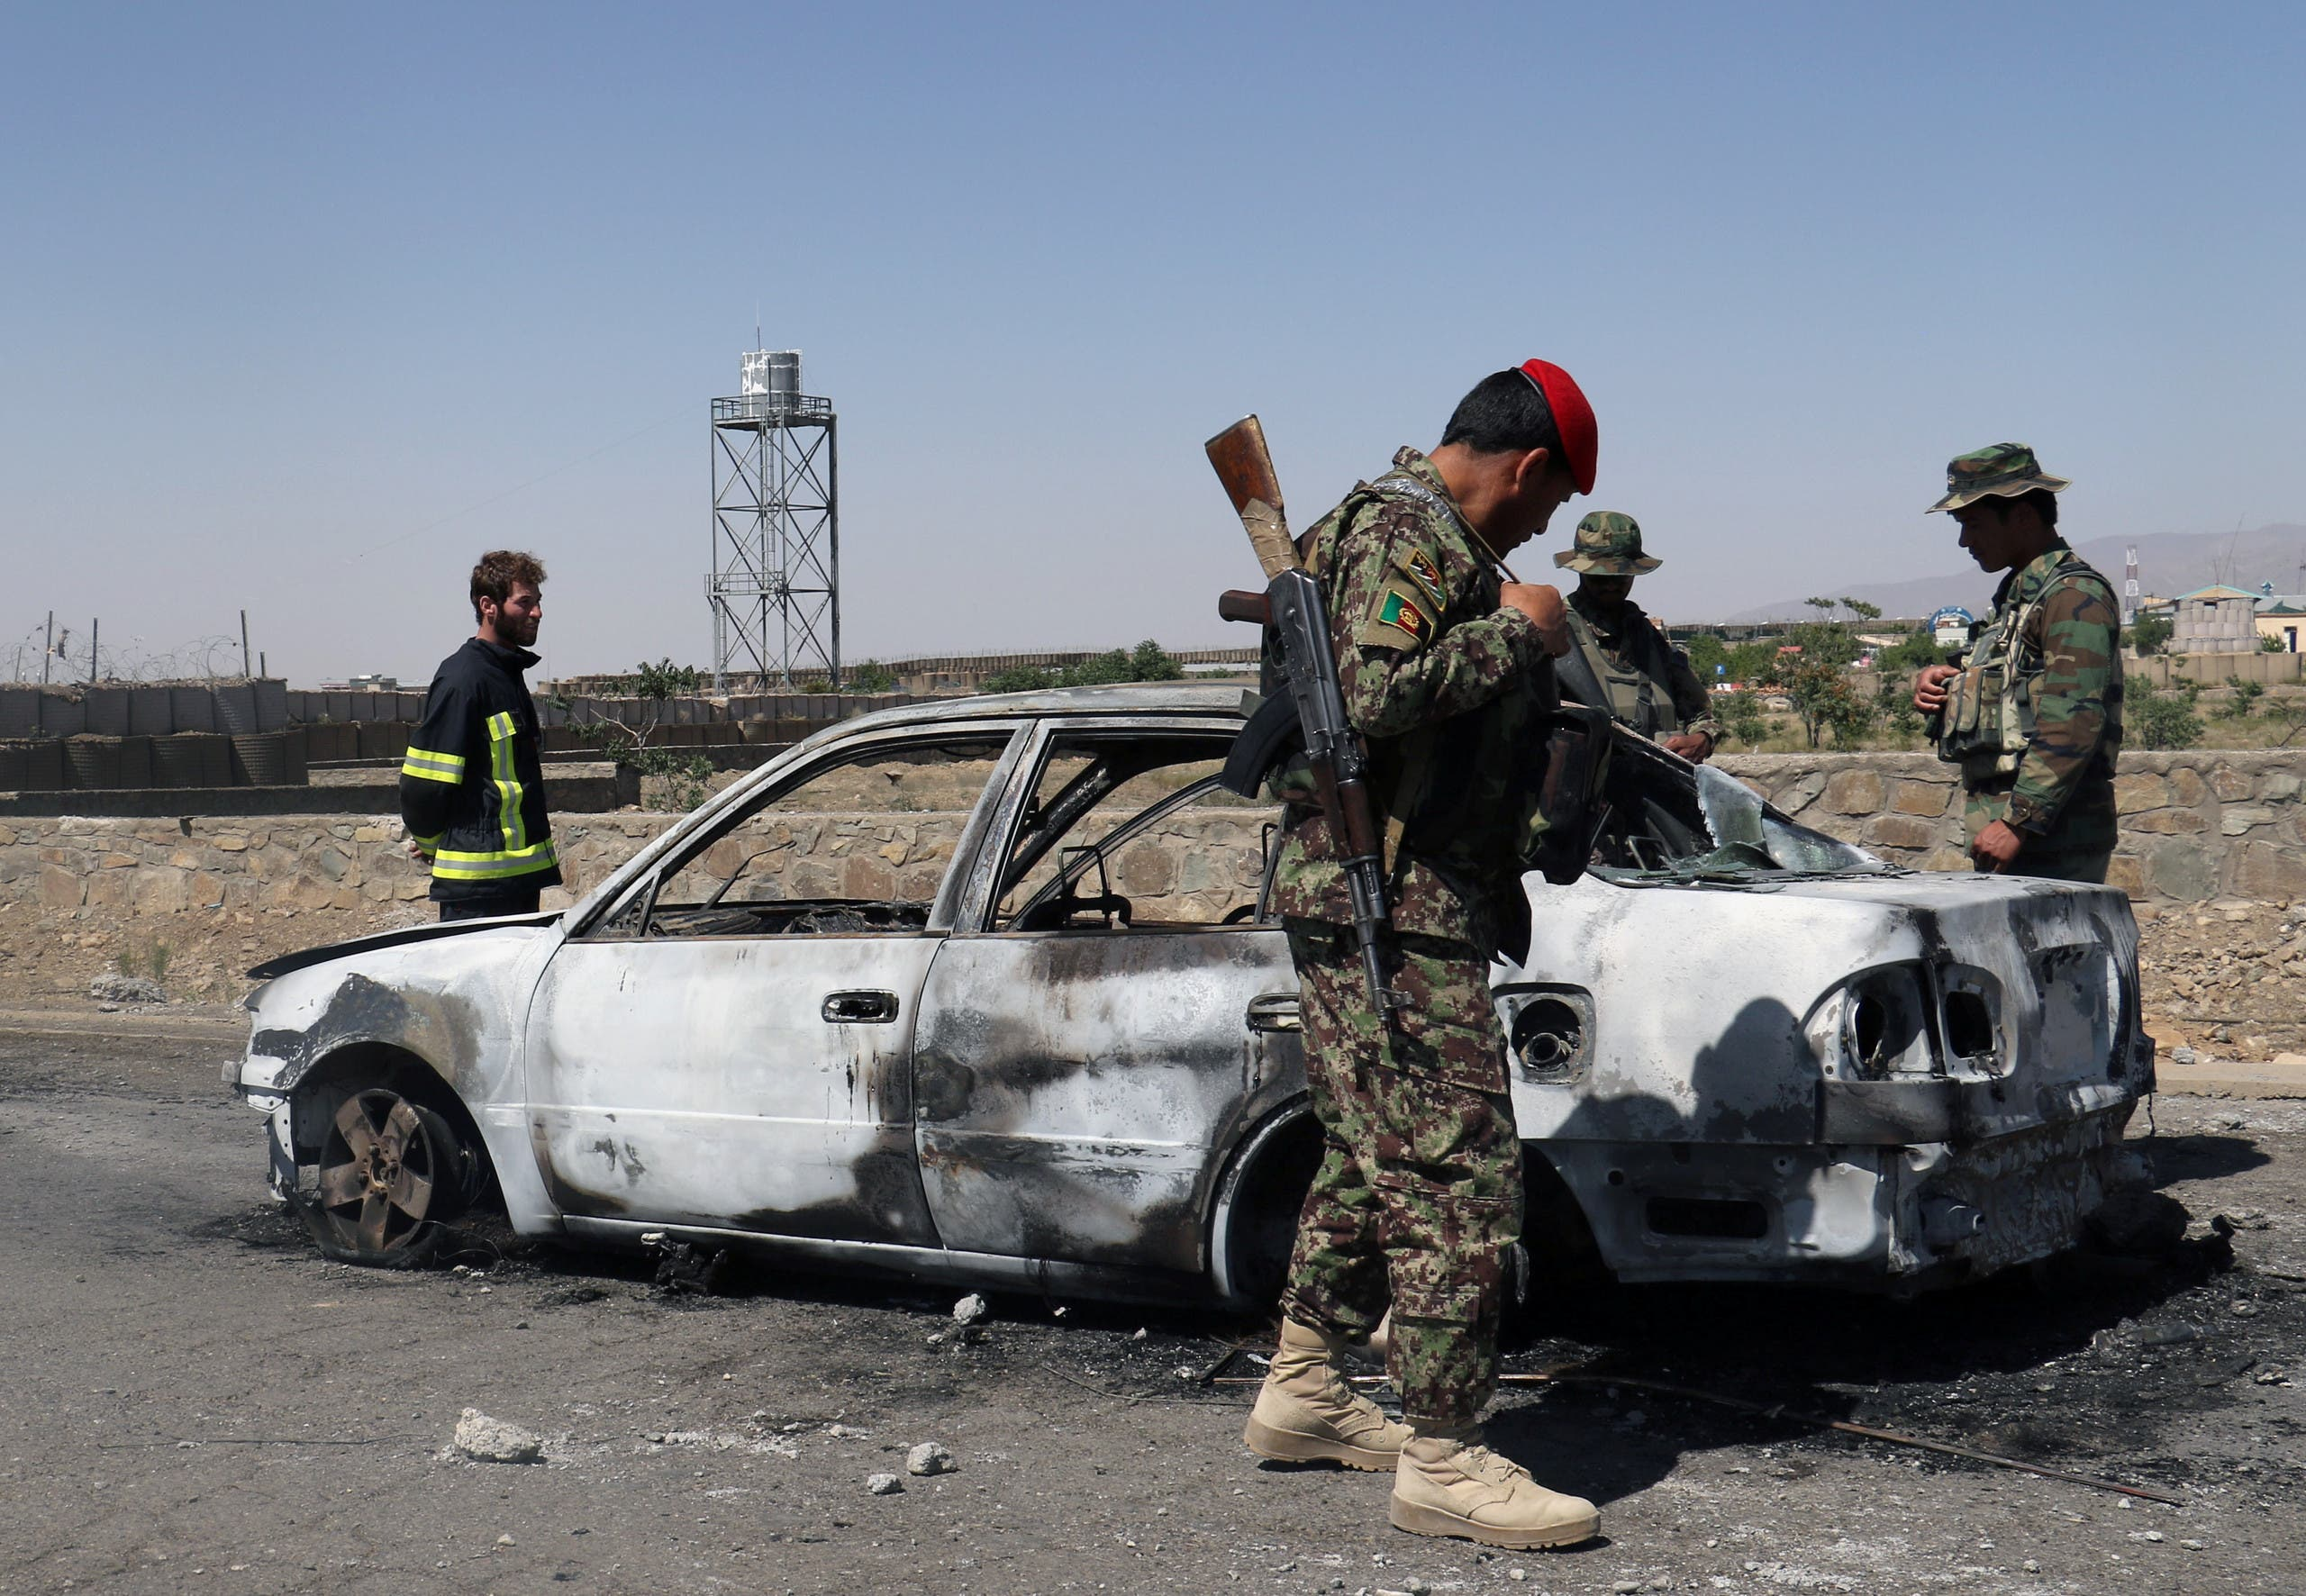 Afghan security forces inspect the exterior of a car after a suicide bomb blast in Gardez, Paktia Province, Afghanistan June 18, 2017. (File photo: Reuters)